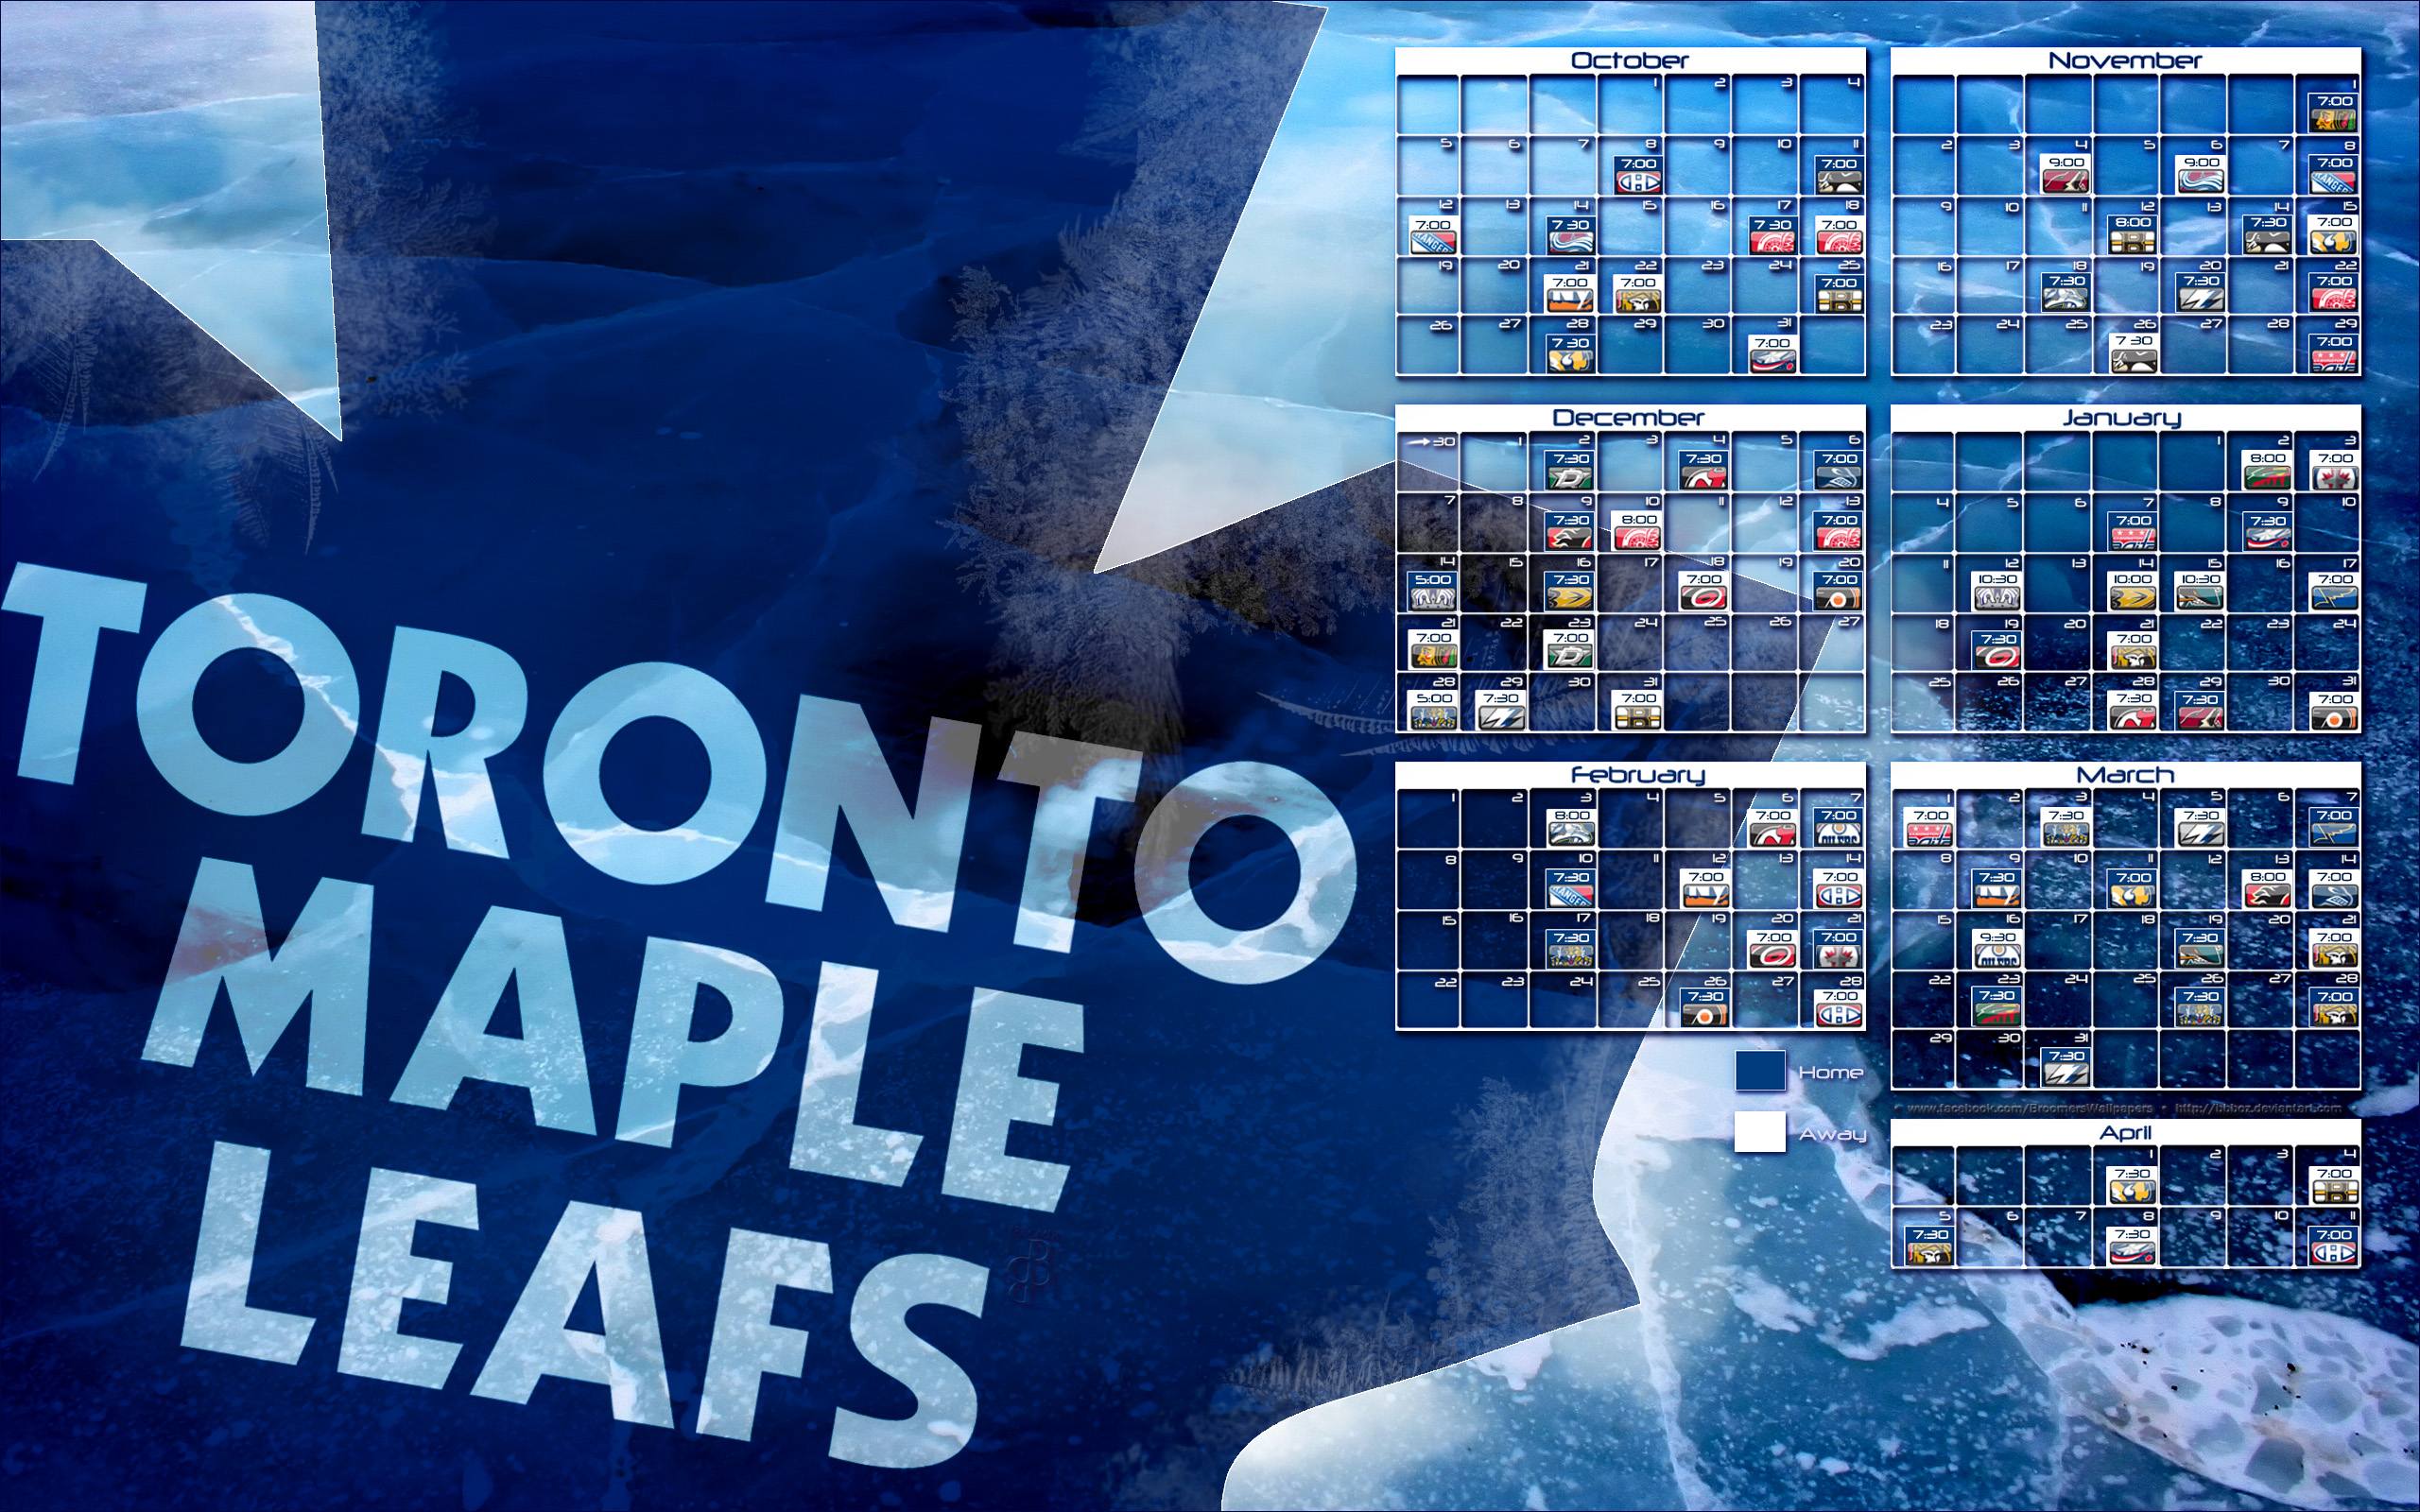 Toronto Maple Leafs Images Crazy Gallery 2560x1600